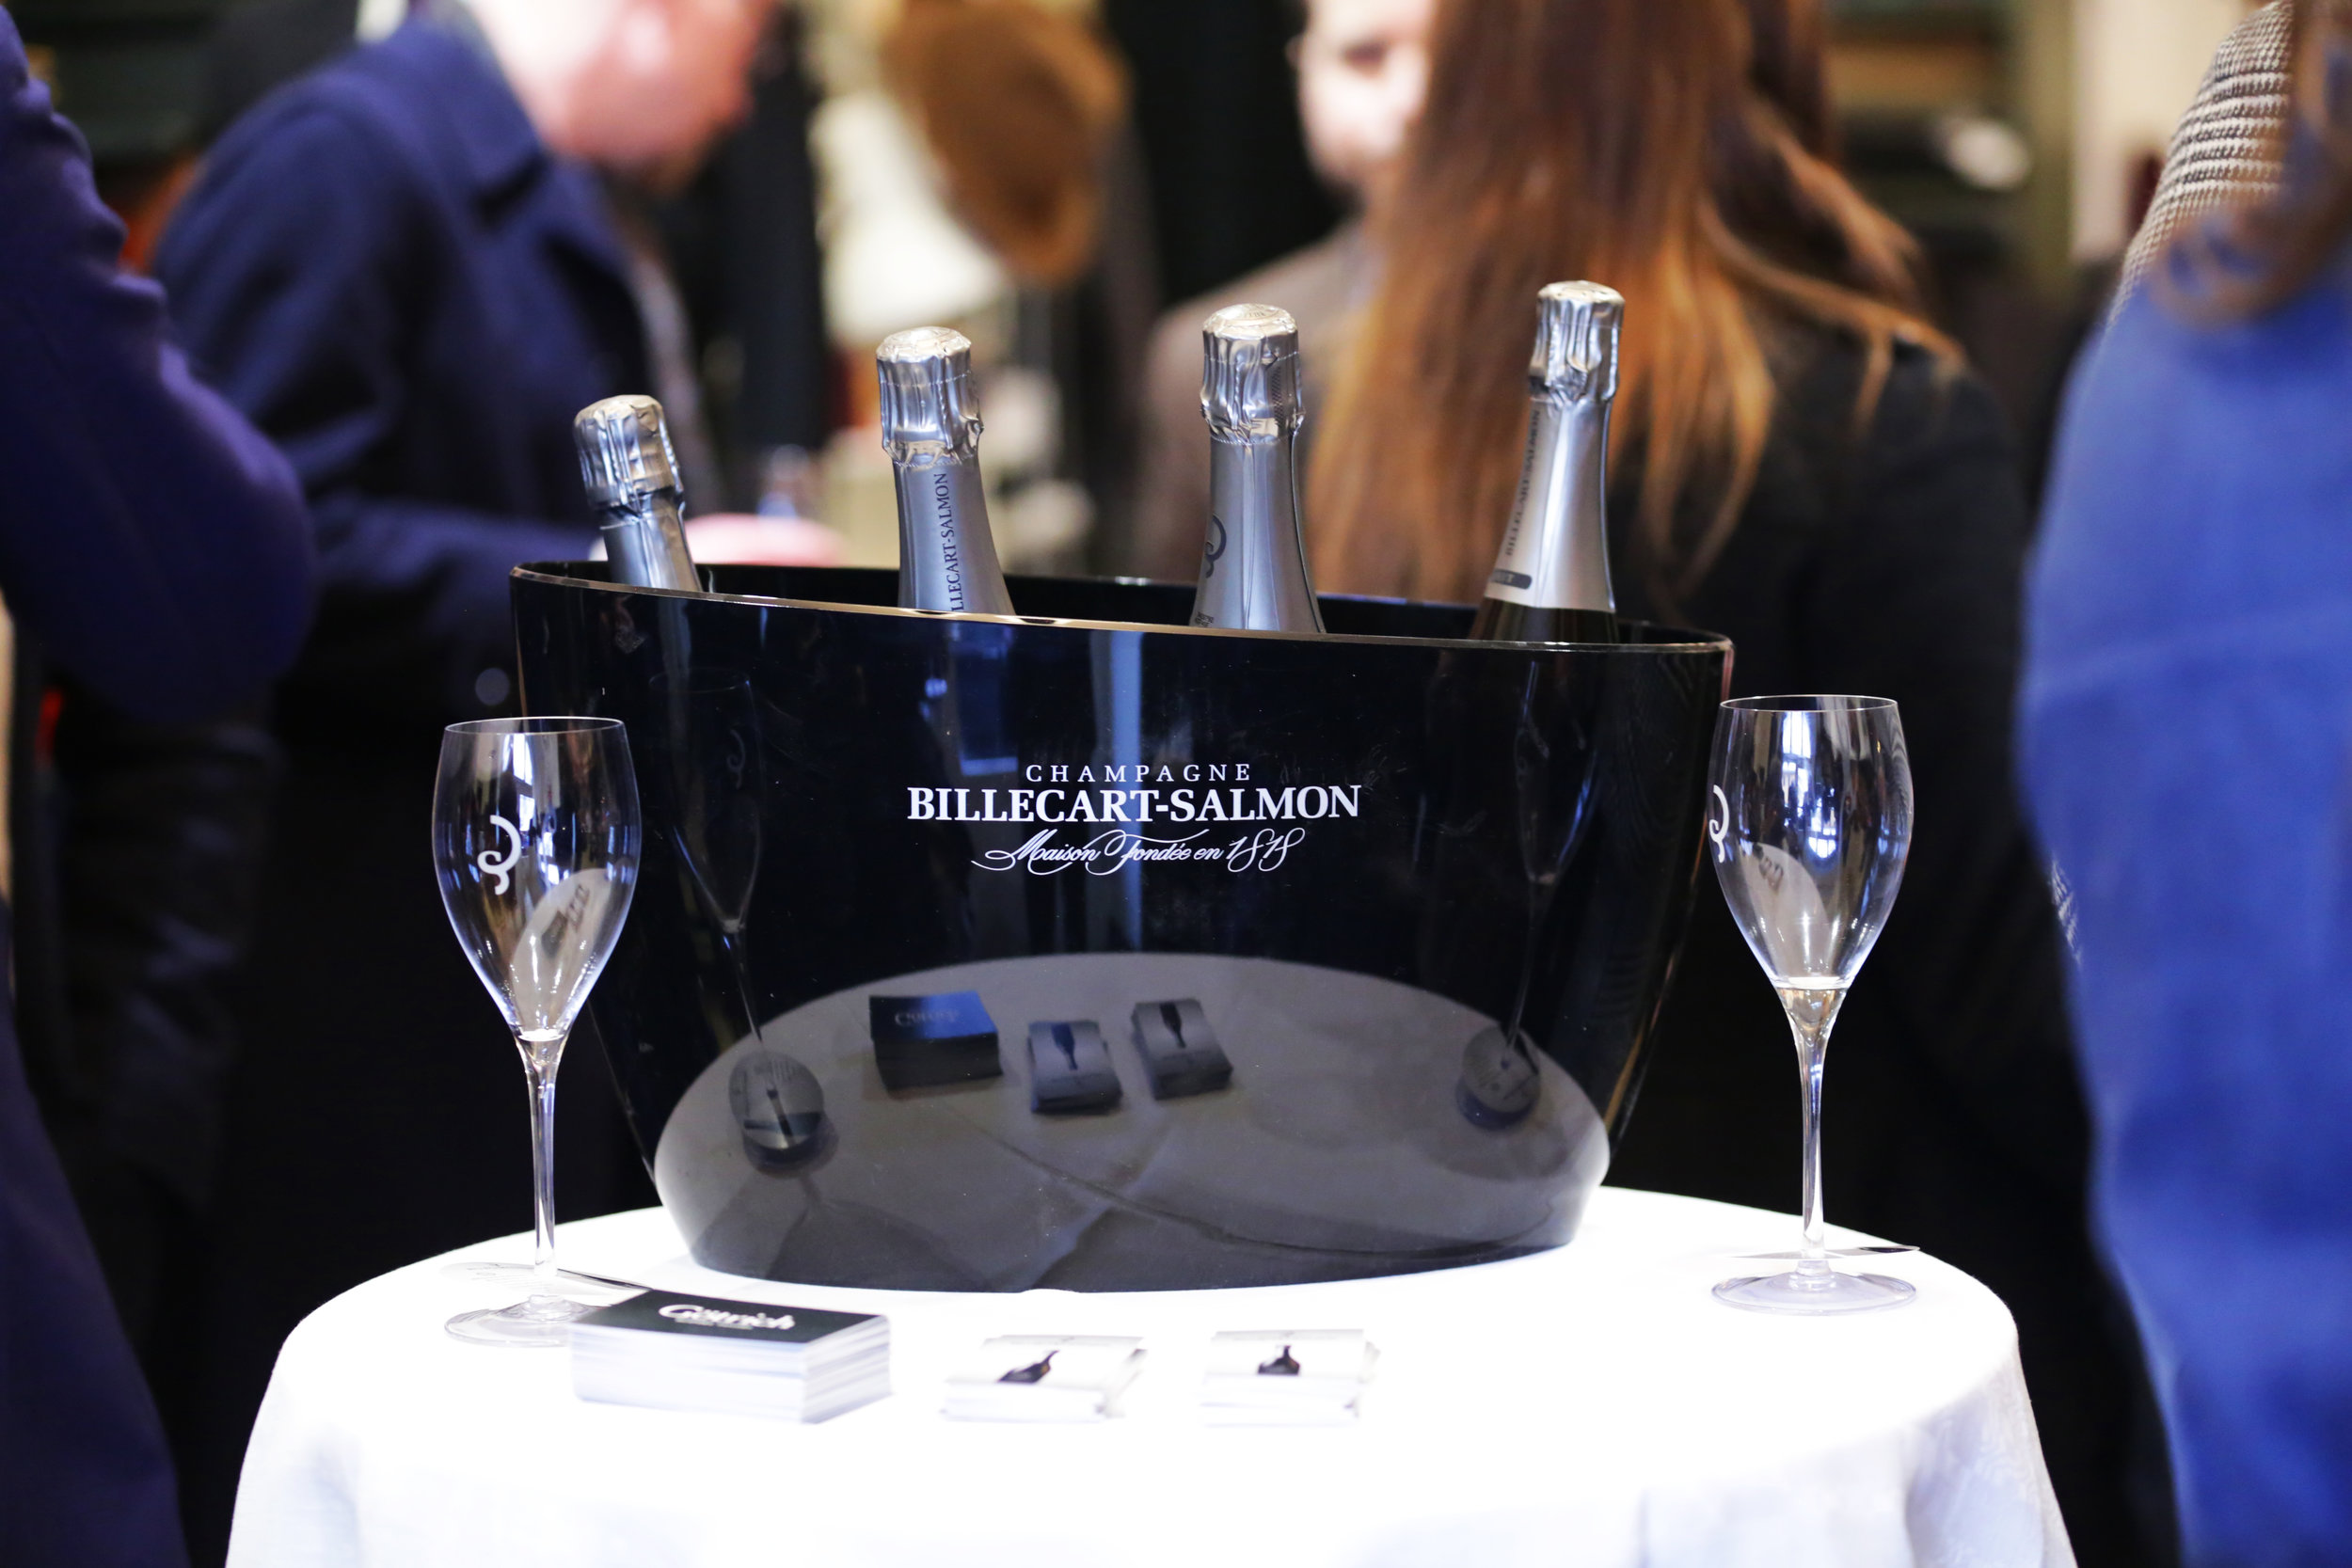 Champagne and rosé from Billecart-Salmon/Lively Wines.